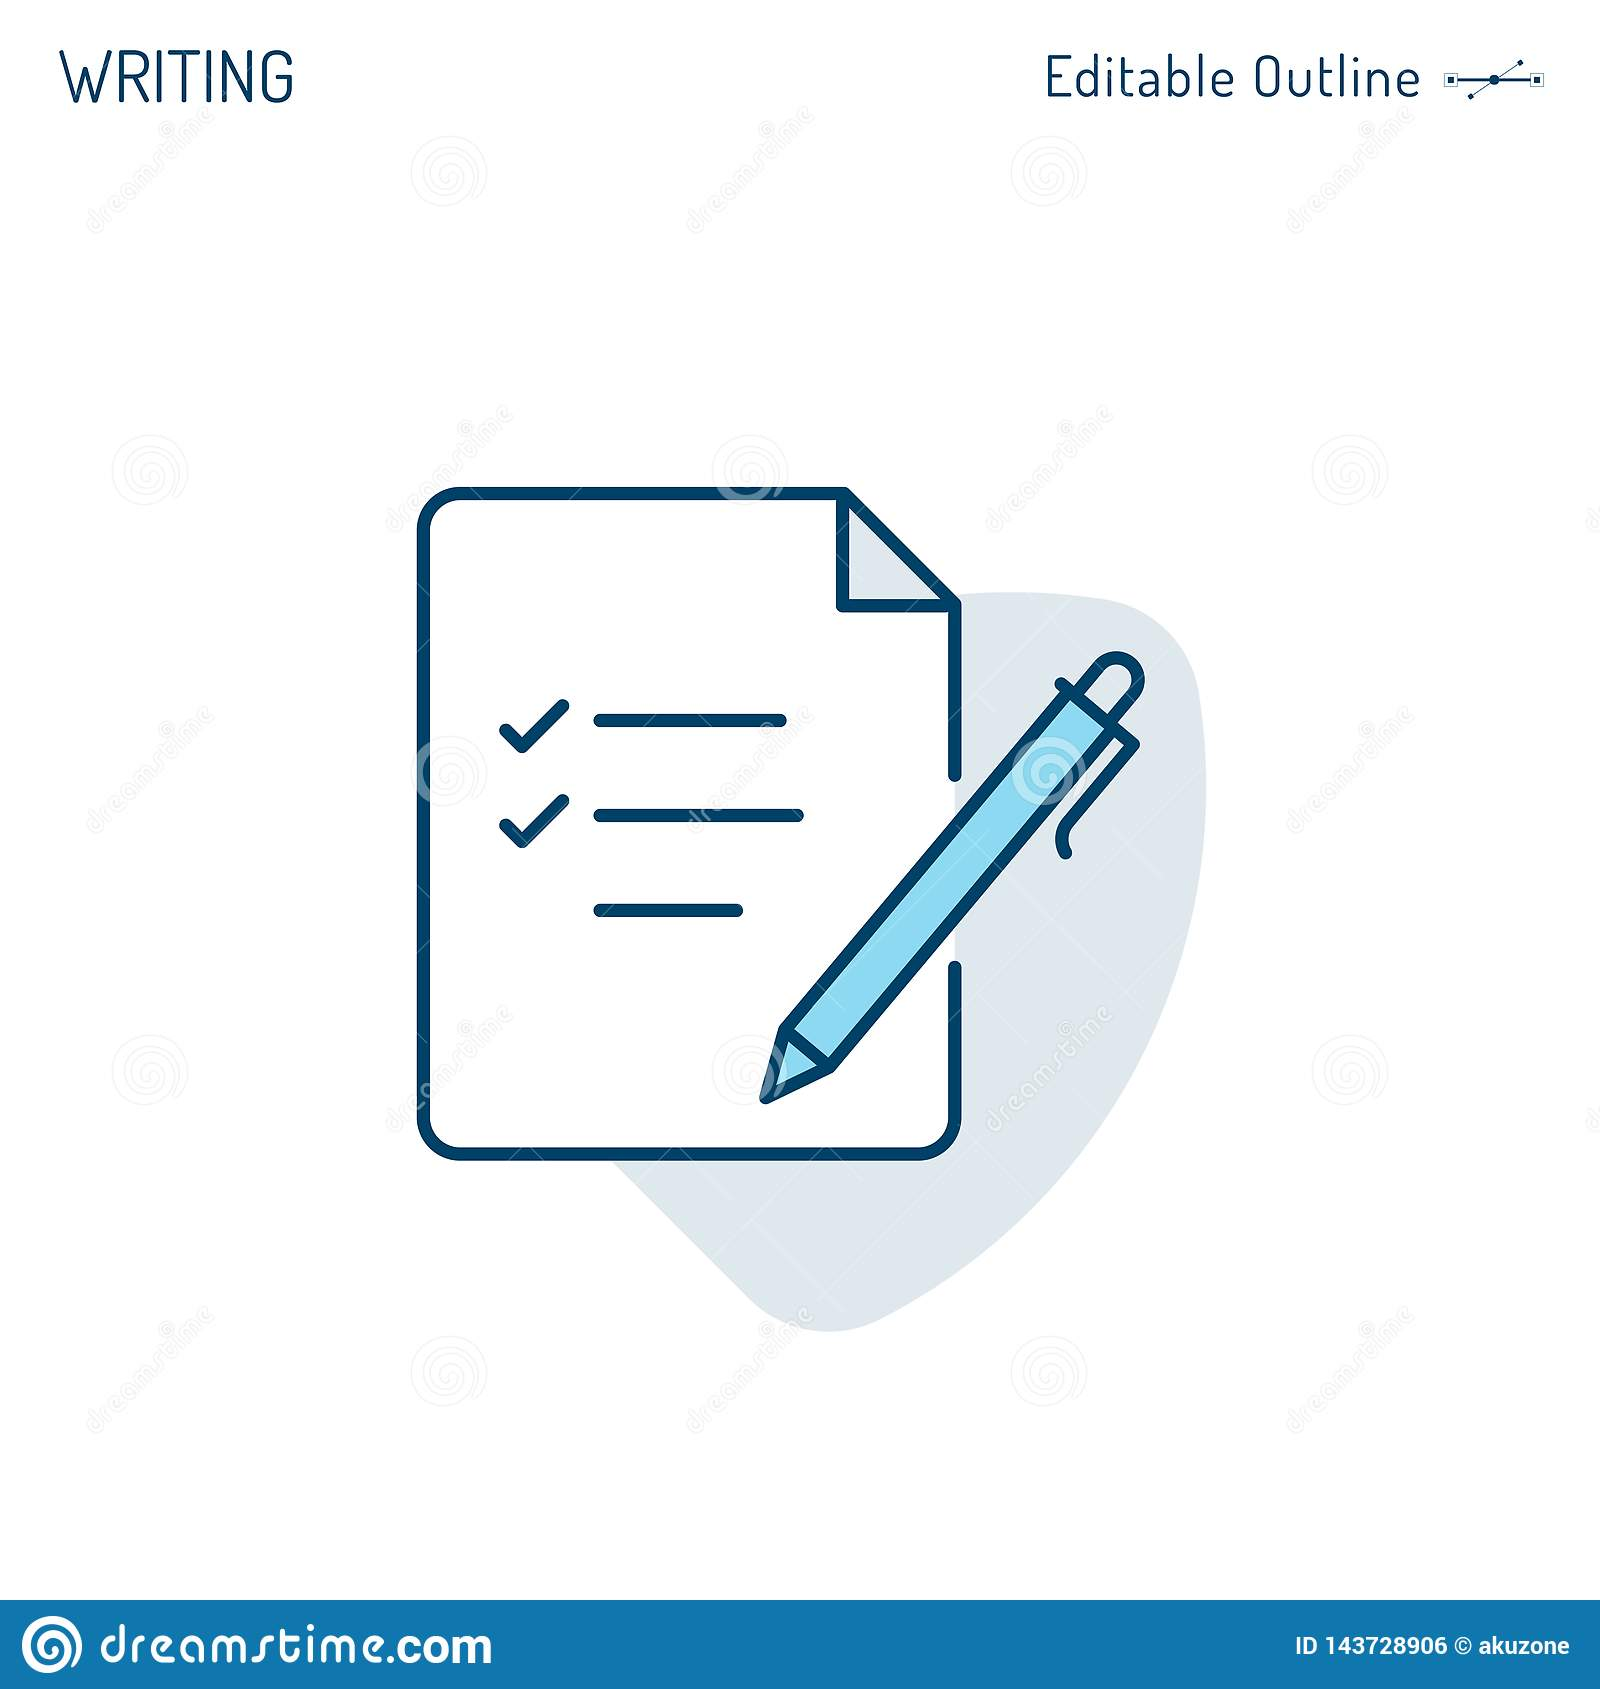 Notepad icon, Writing, File icon, Pen and Paper, Signing business document, Checklist, Corporate Business office files, Editable s